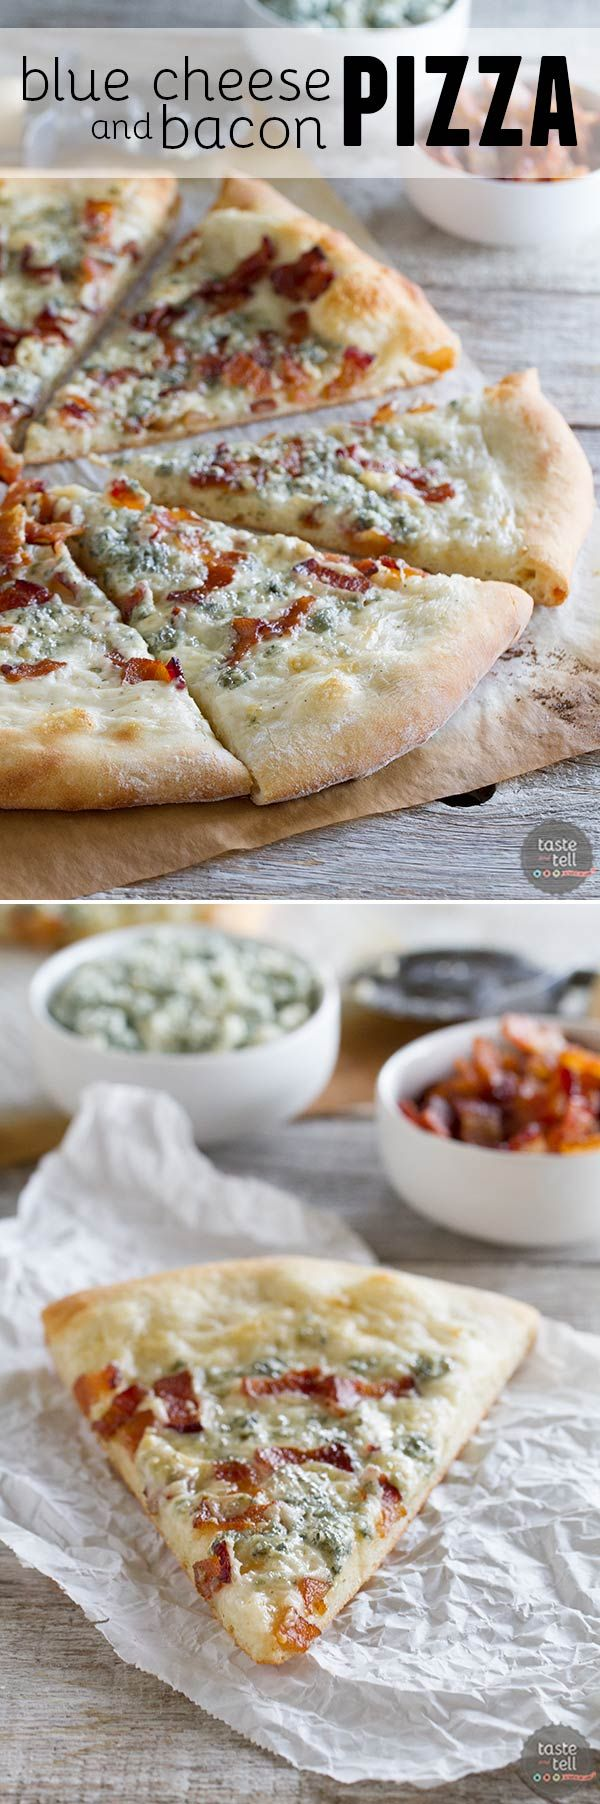 All Things Savory: Blue Cheese and Bacon Pizza - Taste and Tell , Follow PowerRecipes For More.